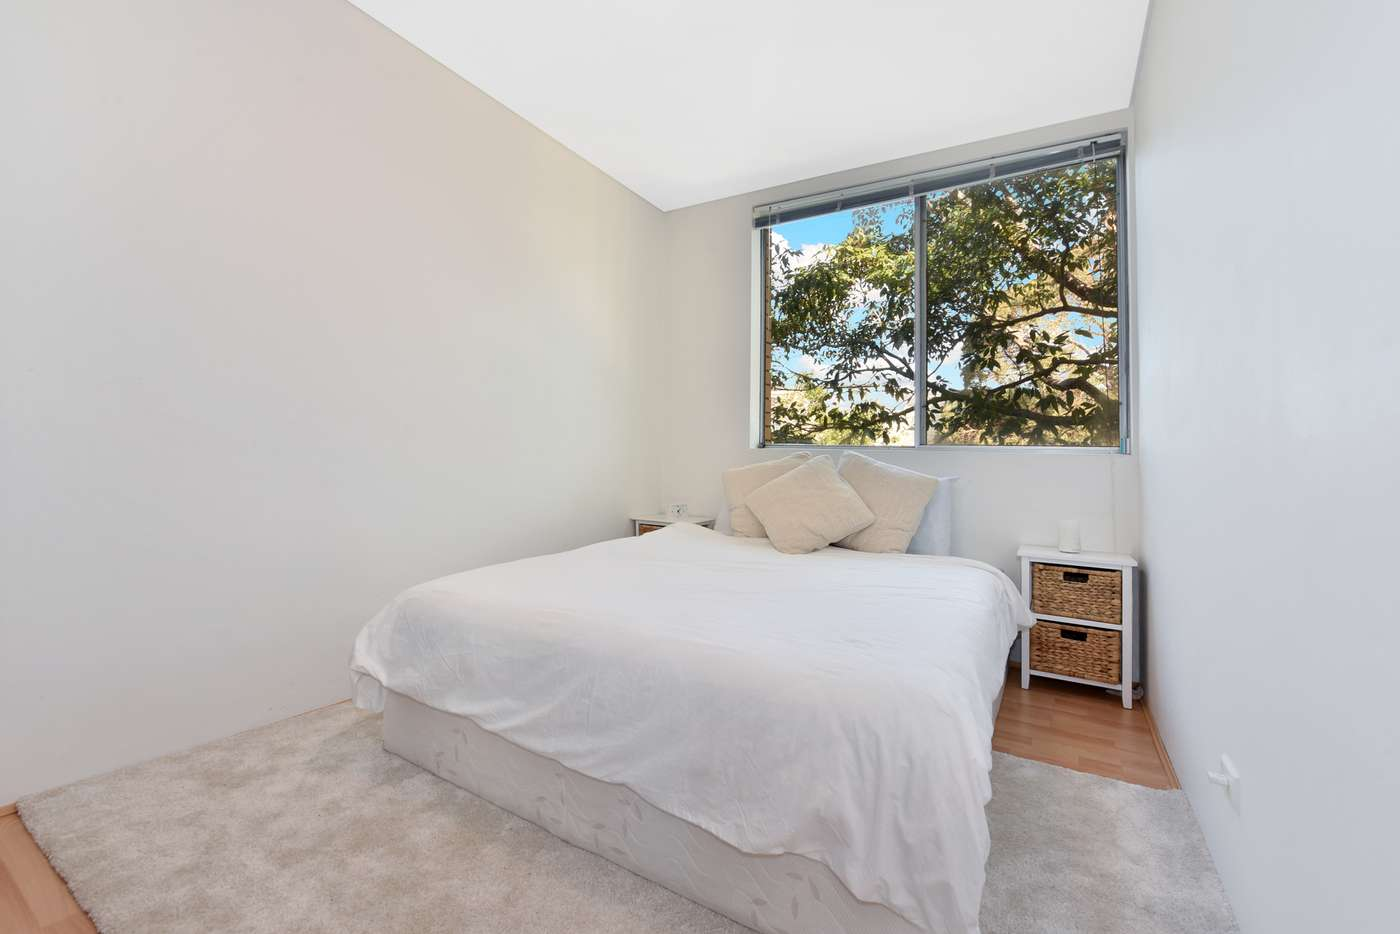 Fifth view of Homely unit listing, 13A/31 Quirk Road, Manly Vale NSW 2093